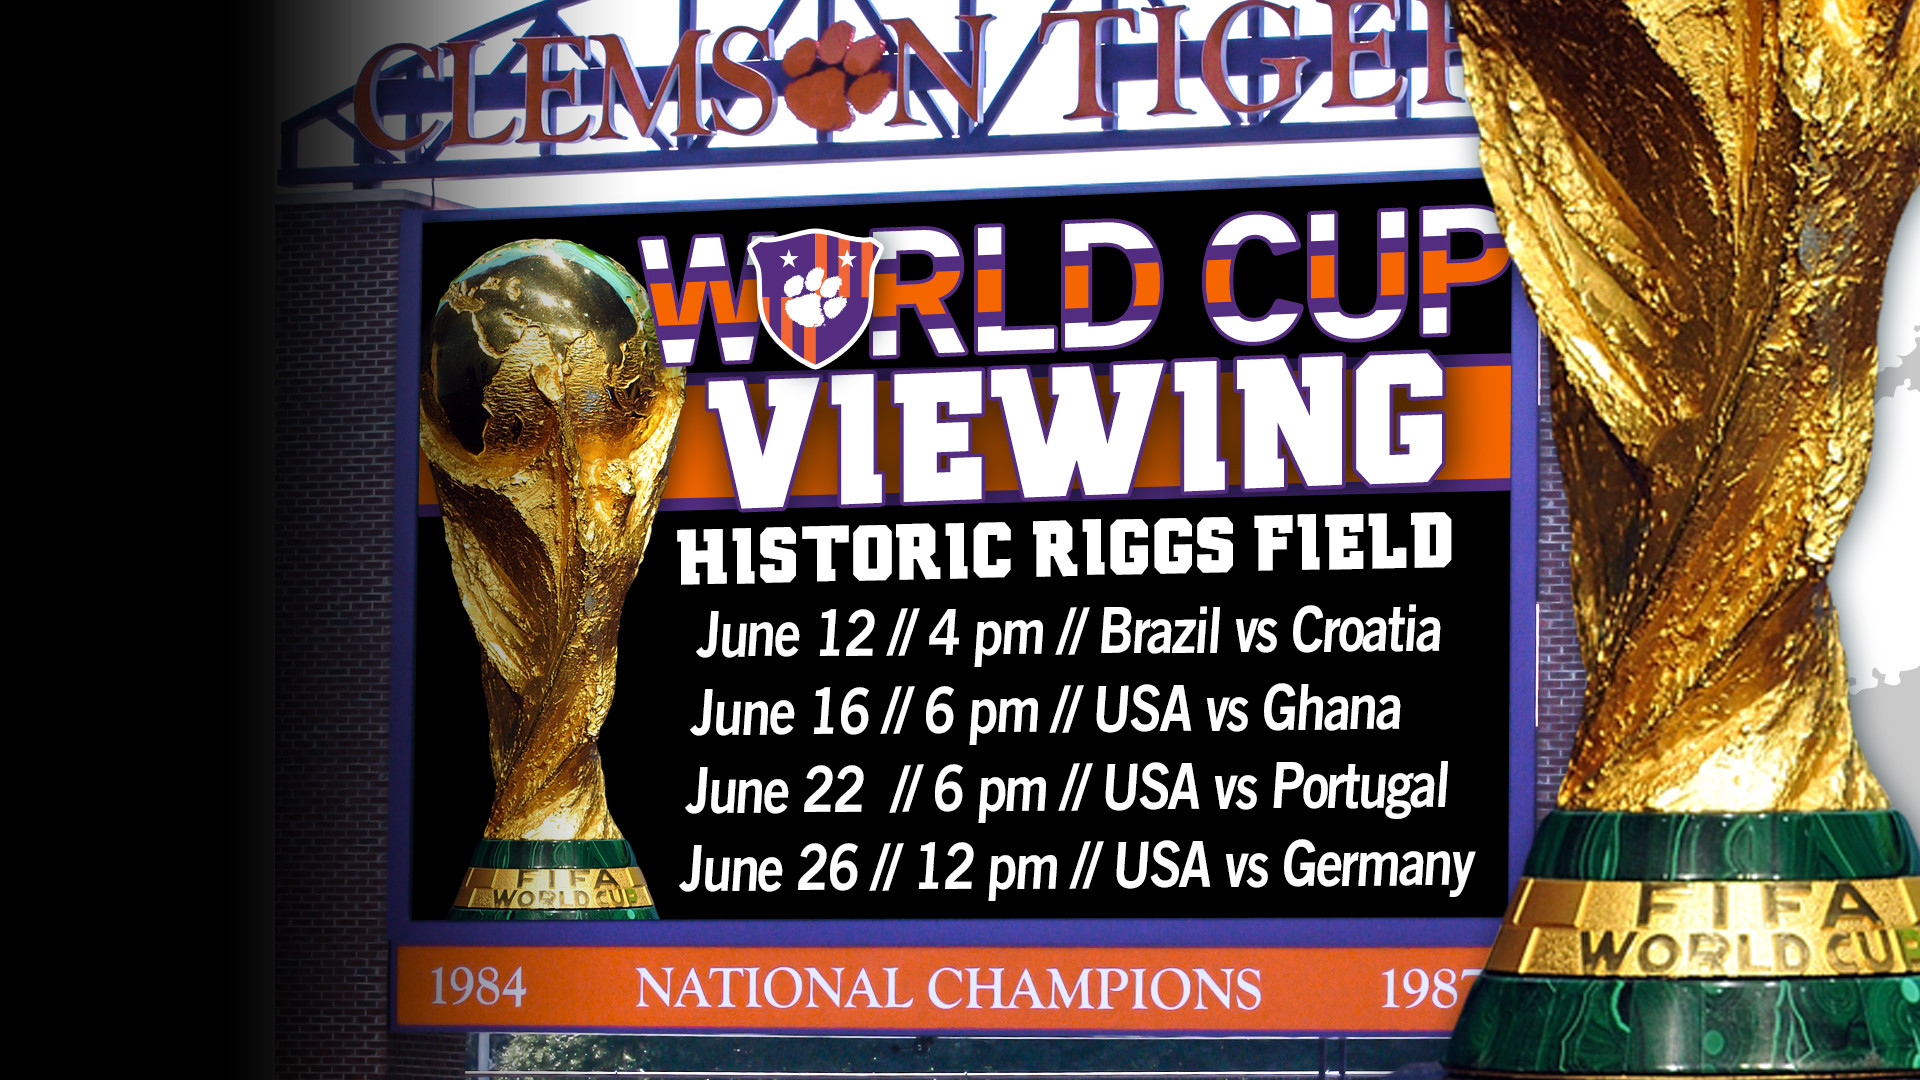 World Cup Viewing Parties at Riggs Field